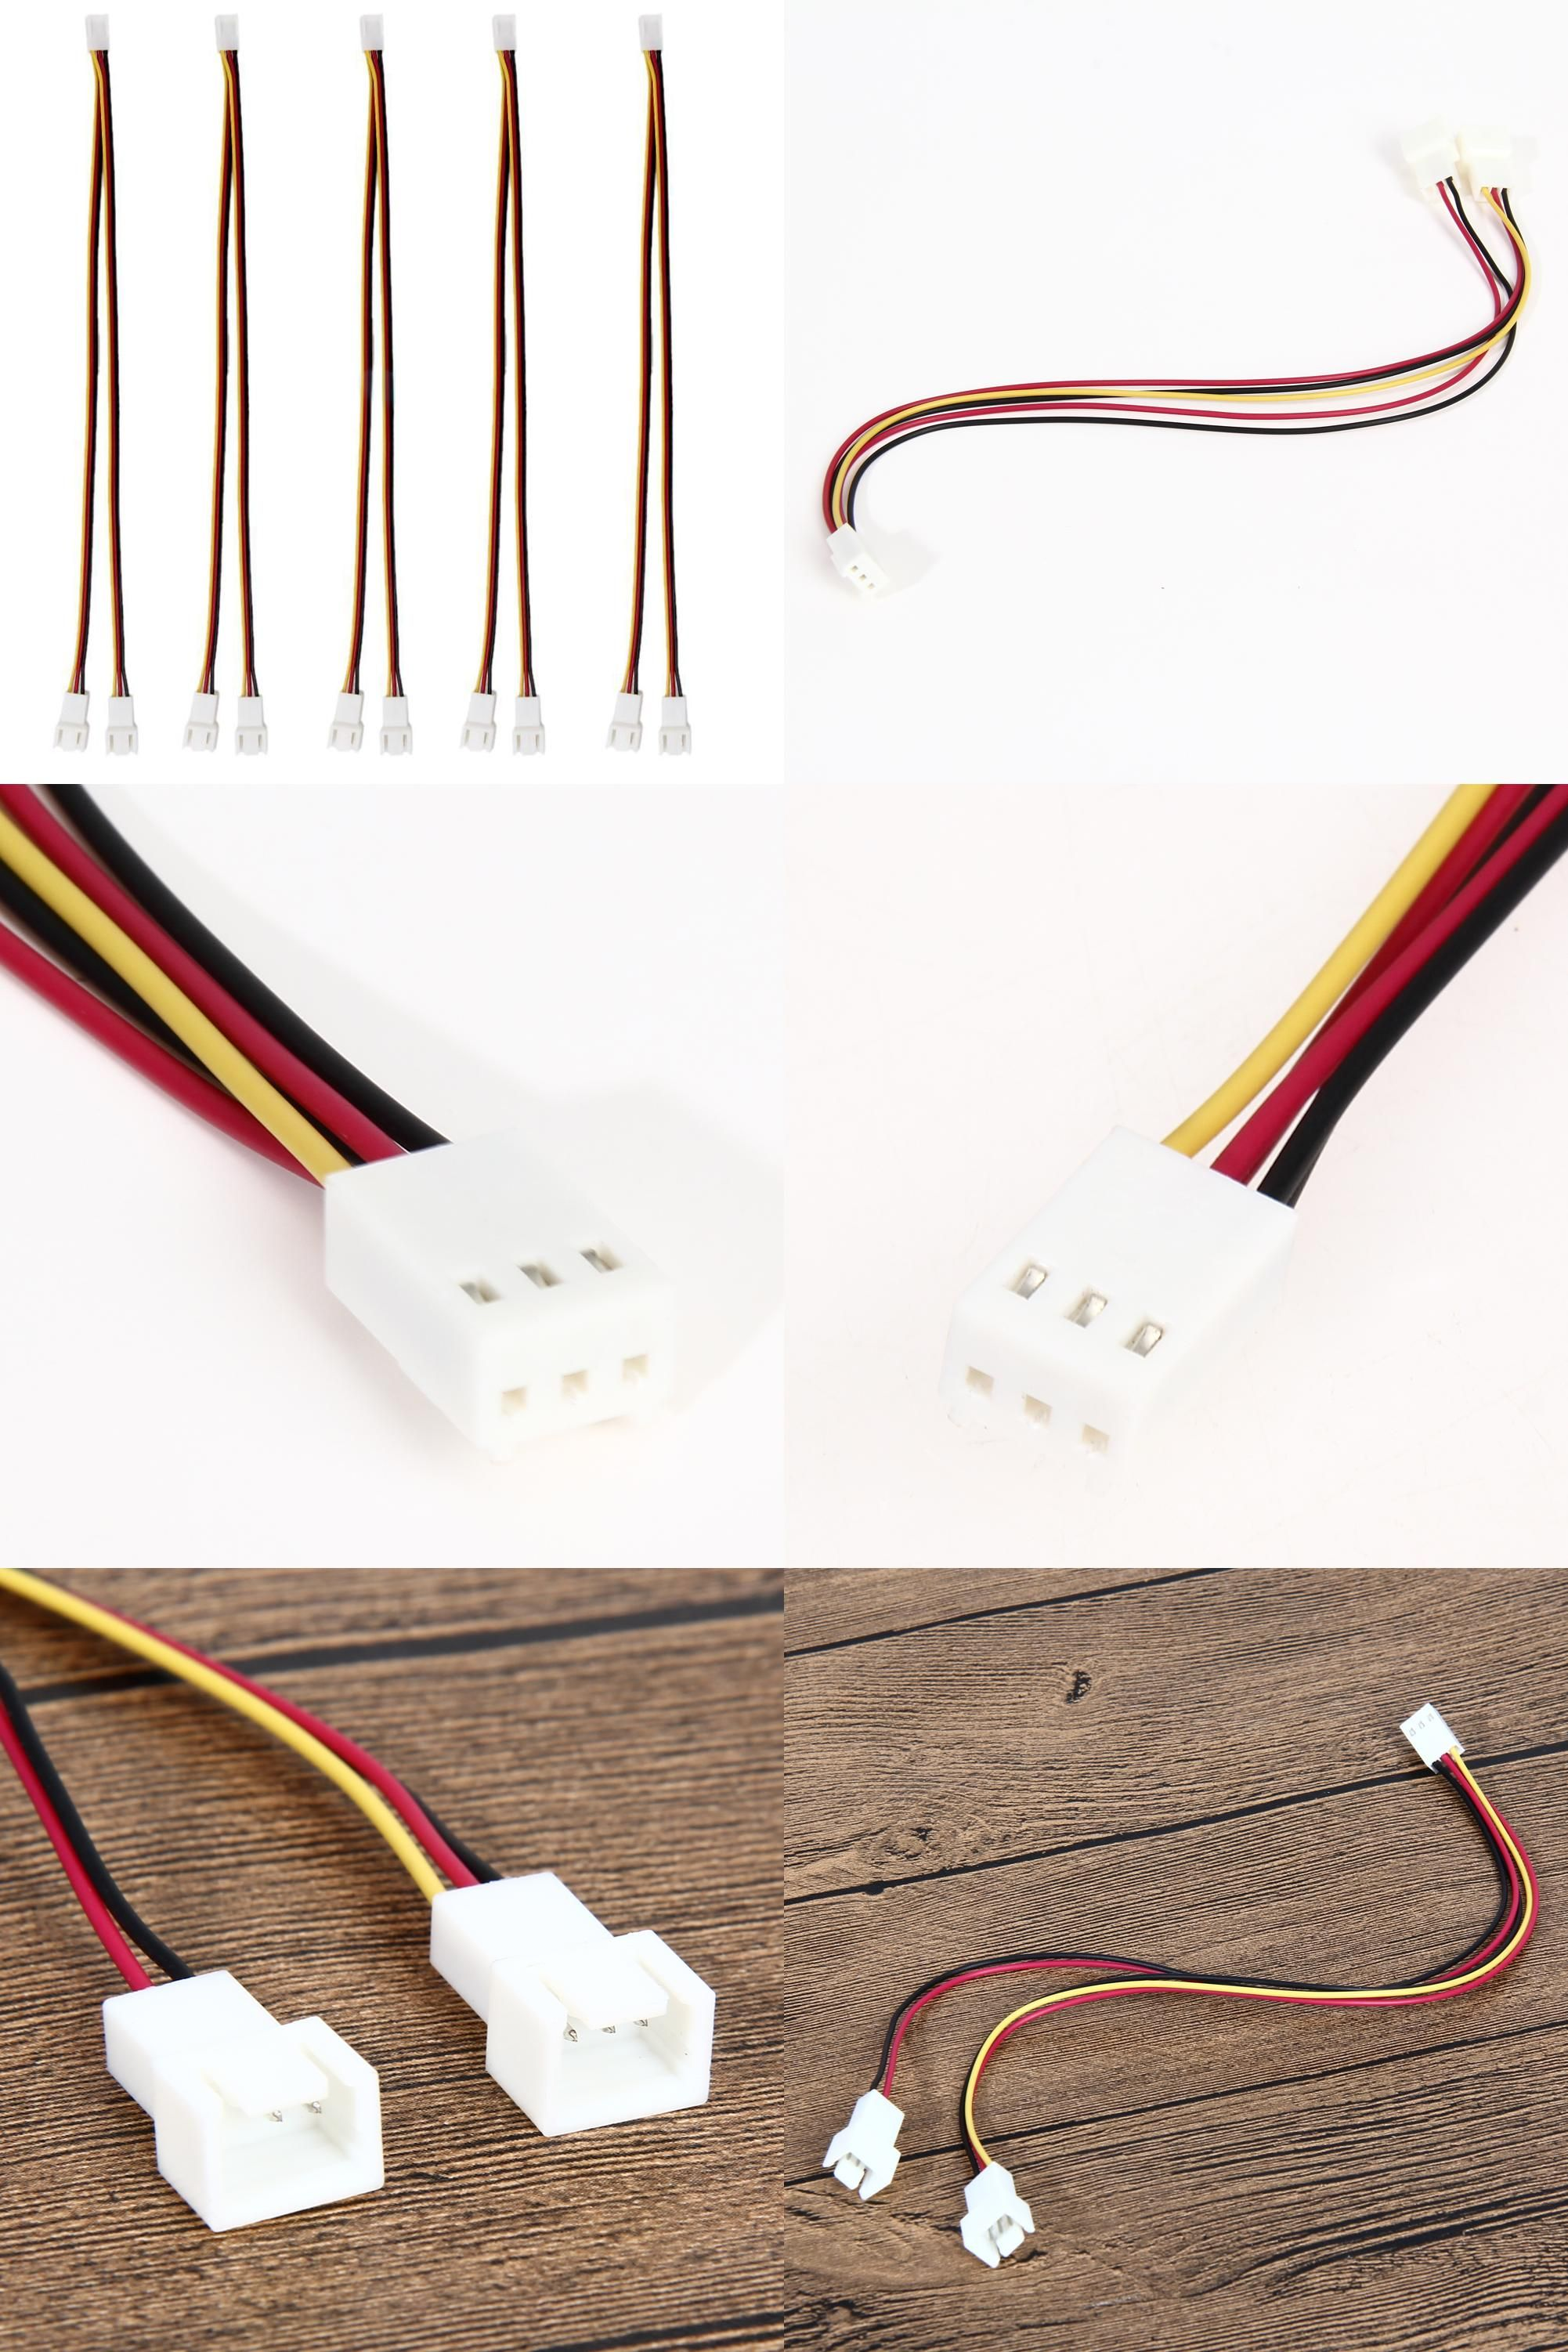 Visit To Buy New 5pcs Fan Connector Cable 12v 3 Pin Female To 2 3 Pin Male Pc Fan Power Splitter Extension Cable High Qua Extension Cable Splitters Connector